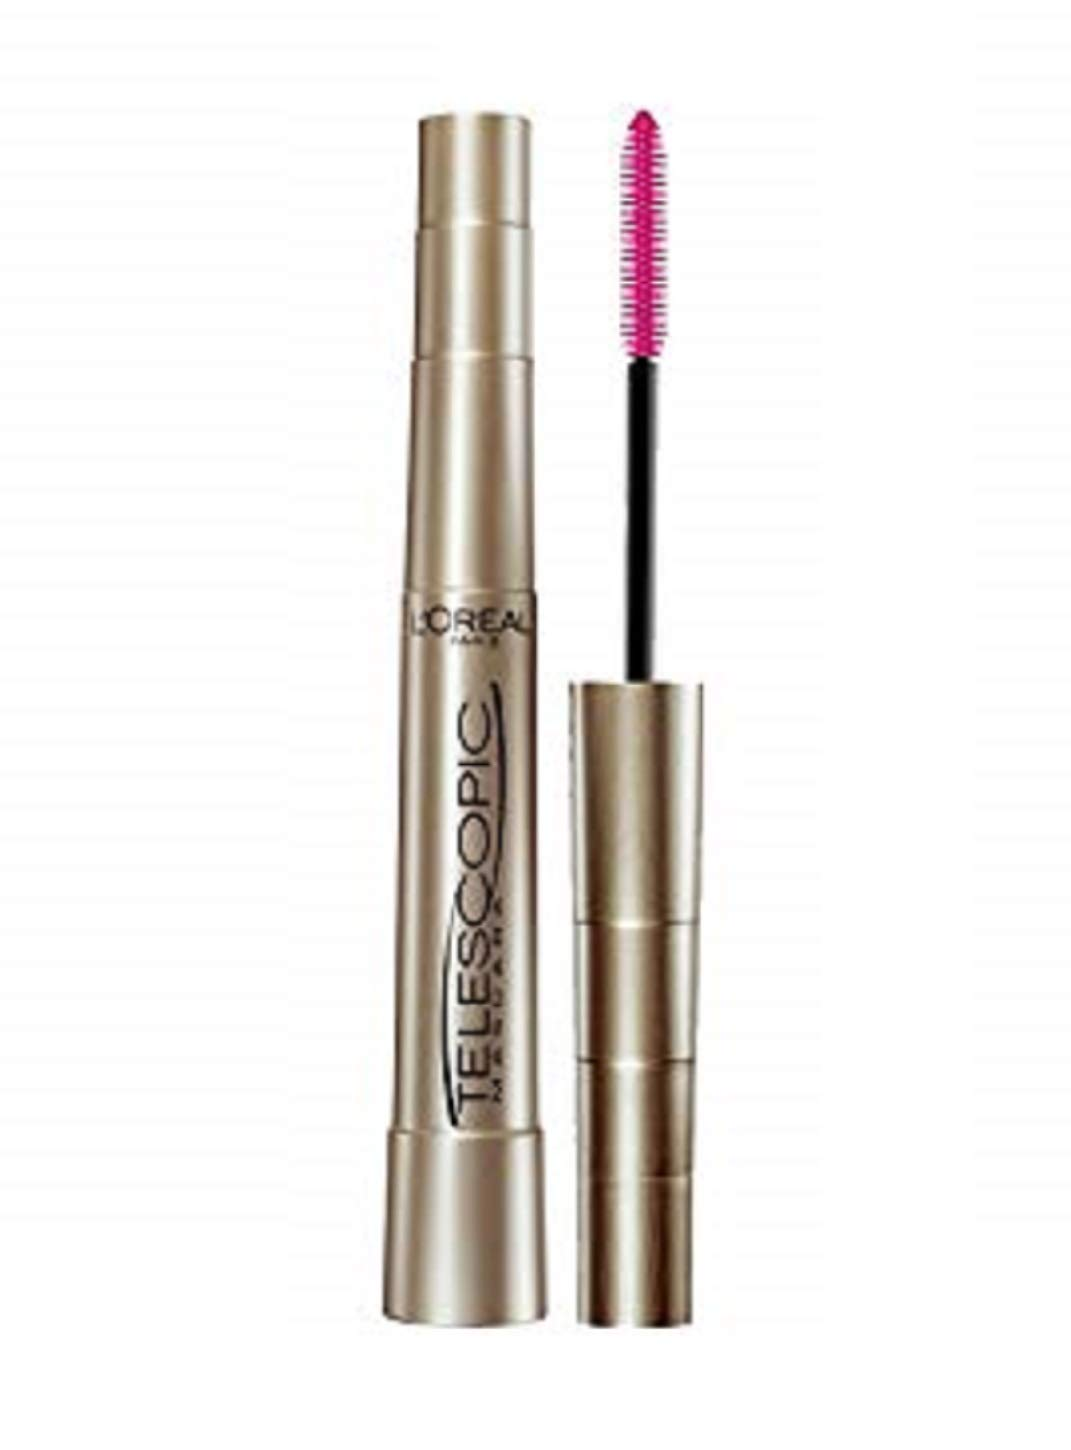 LOréal Paris Telescopic Original Mascara, 910 Blackest Black (Pack of 2)